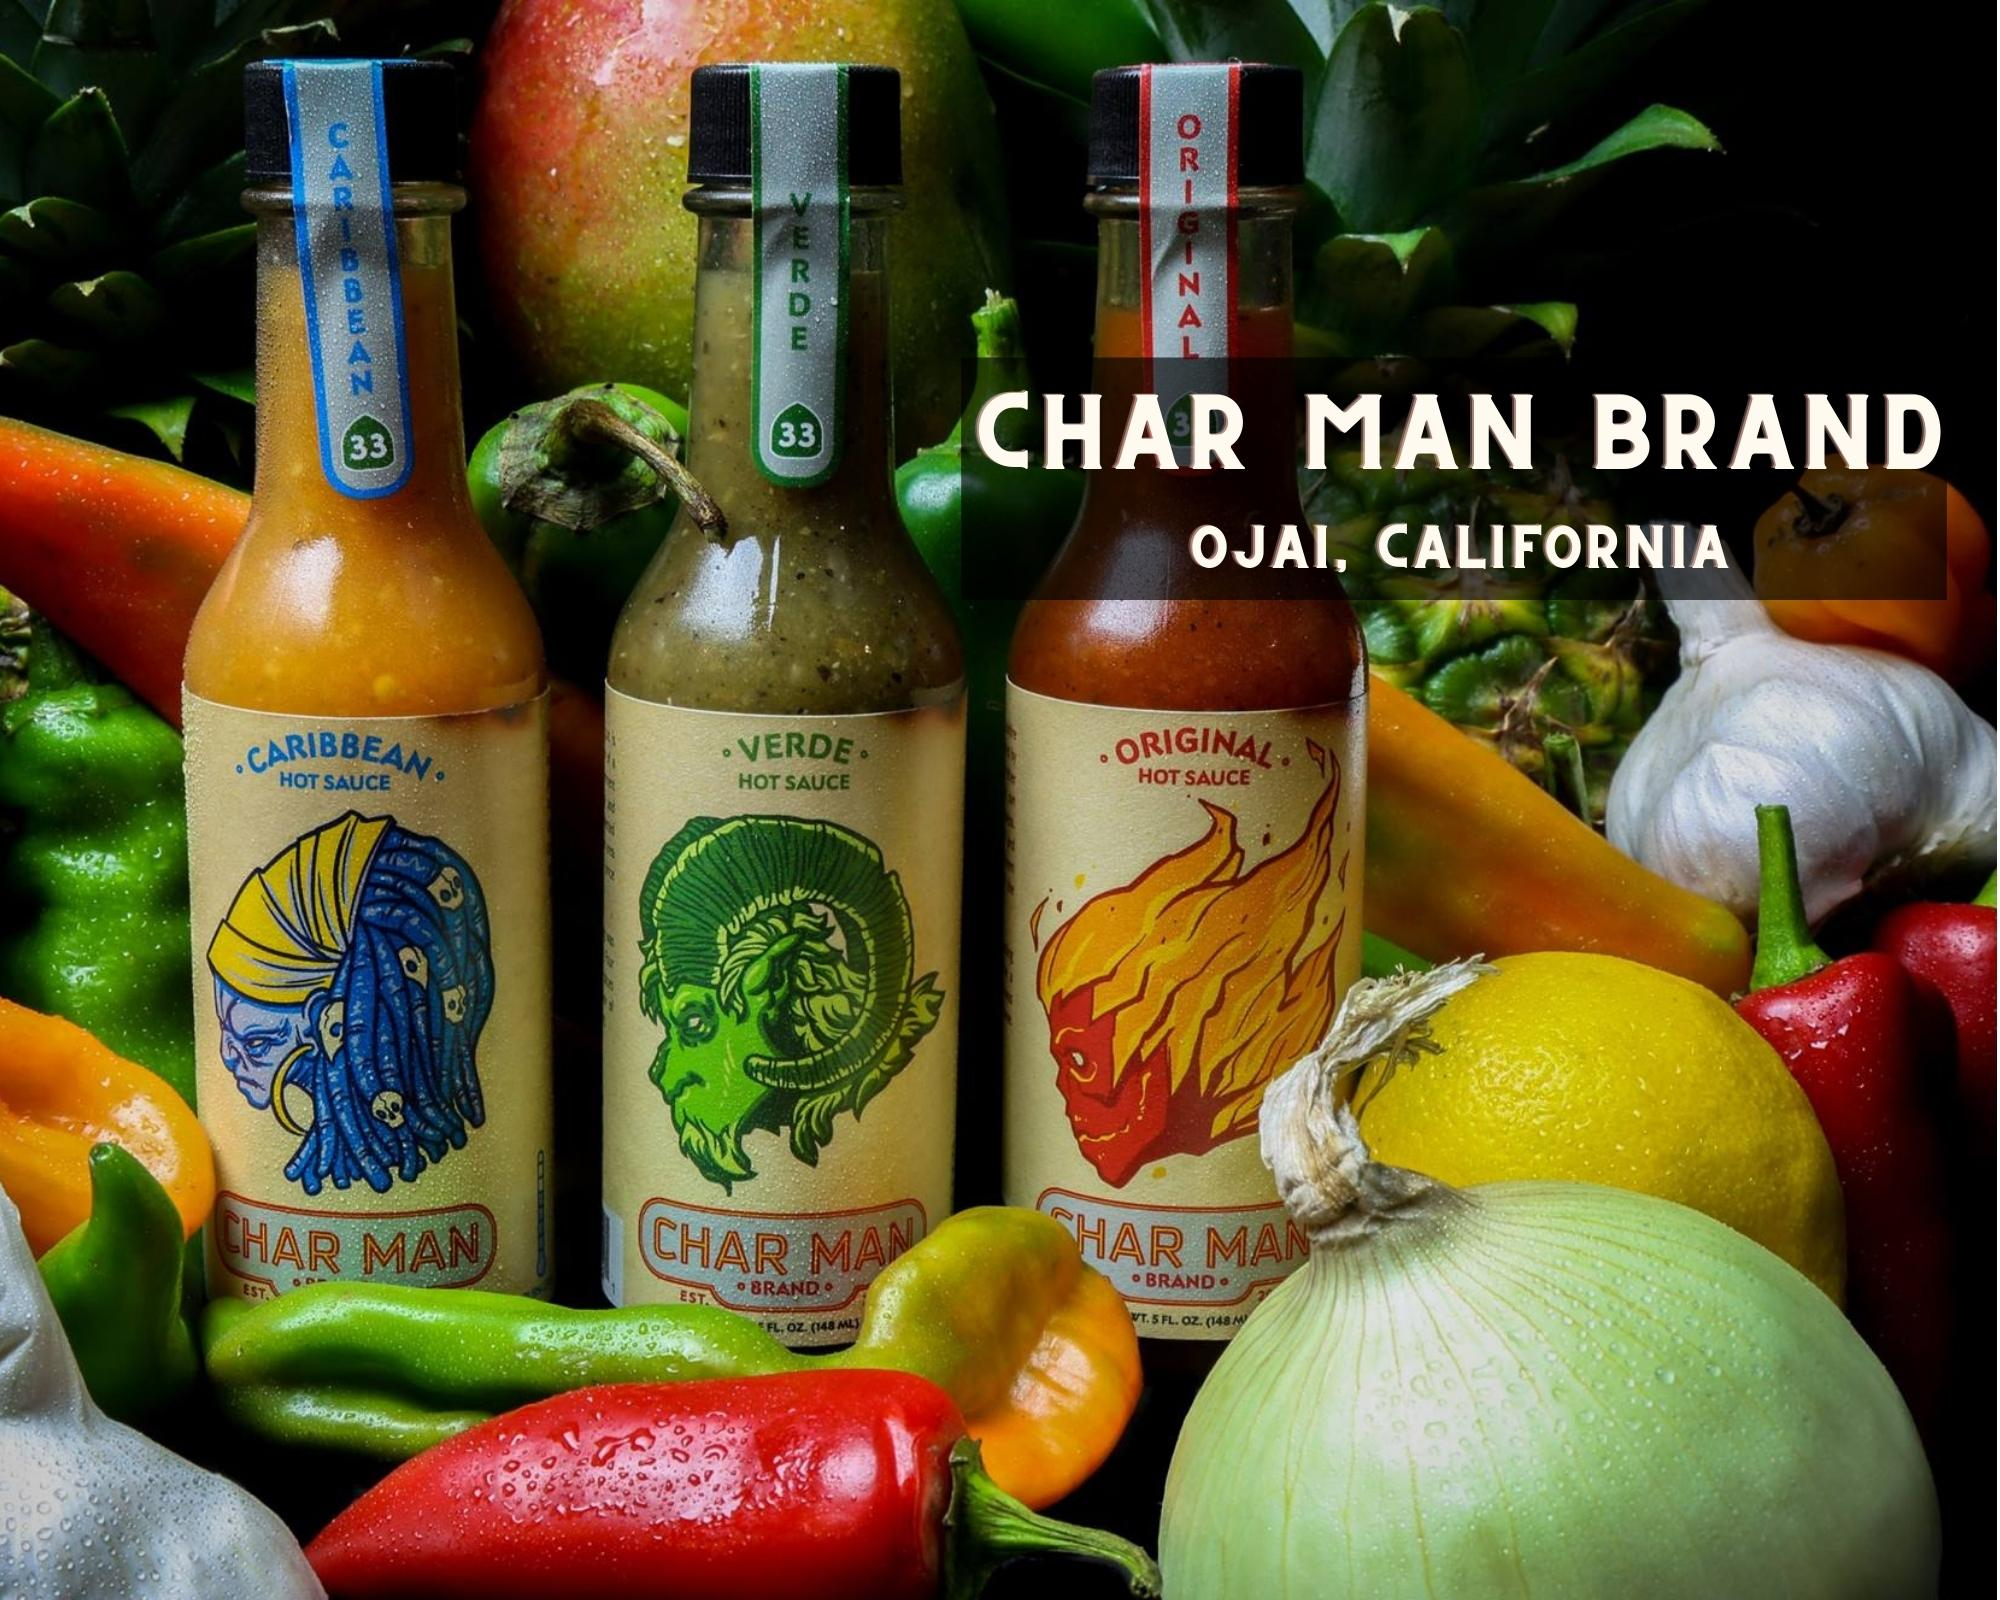 char man brand bottles and labels